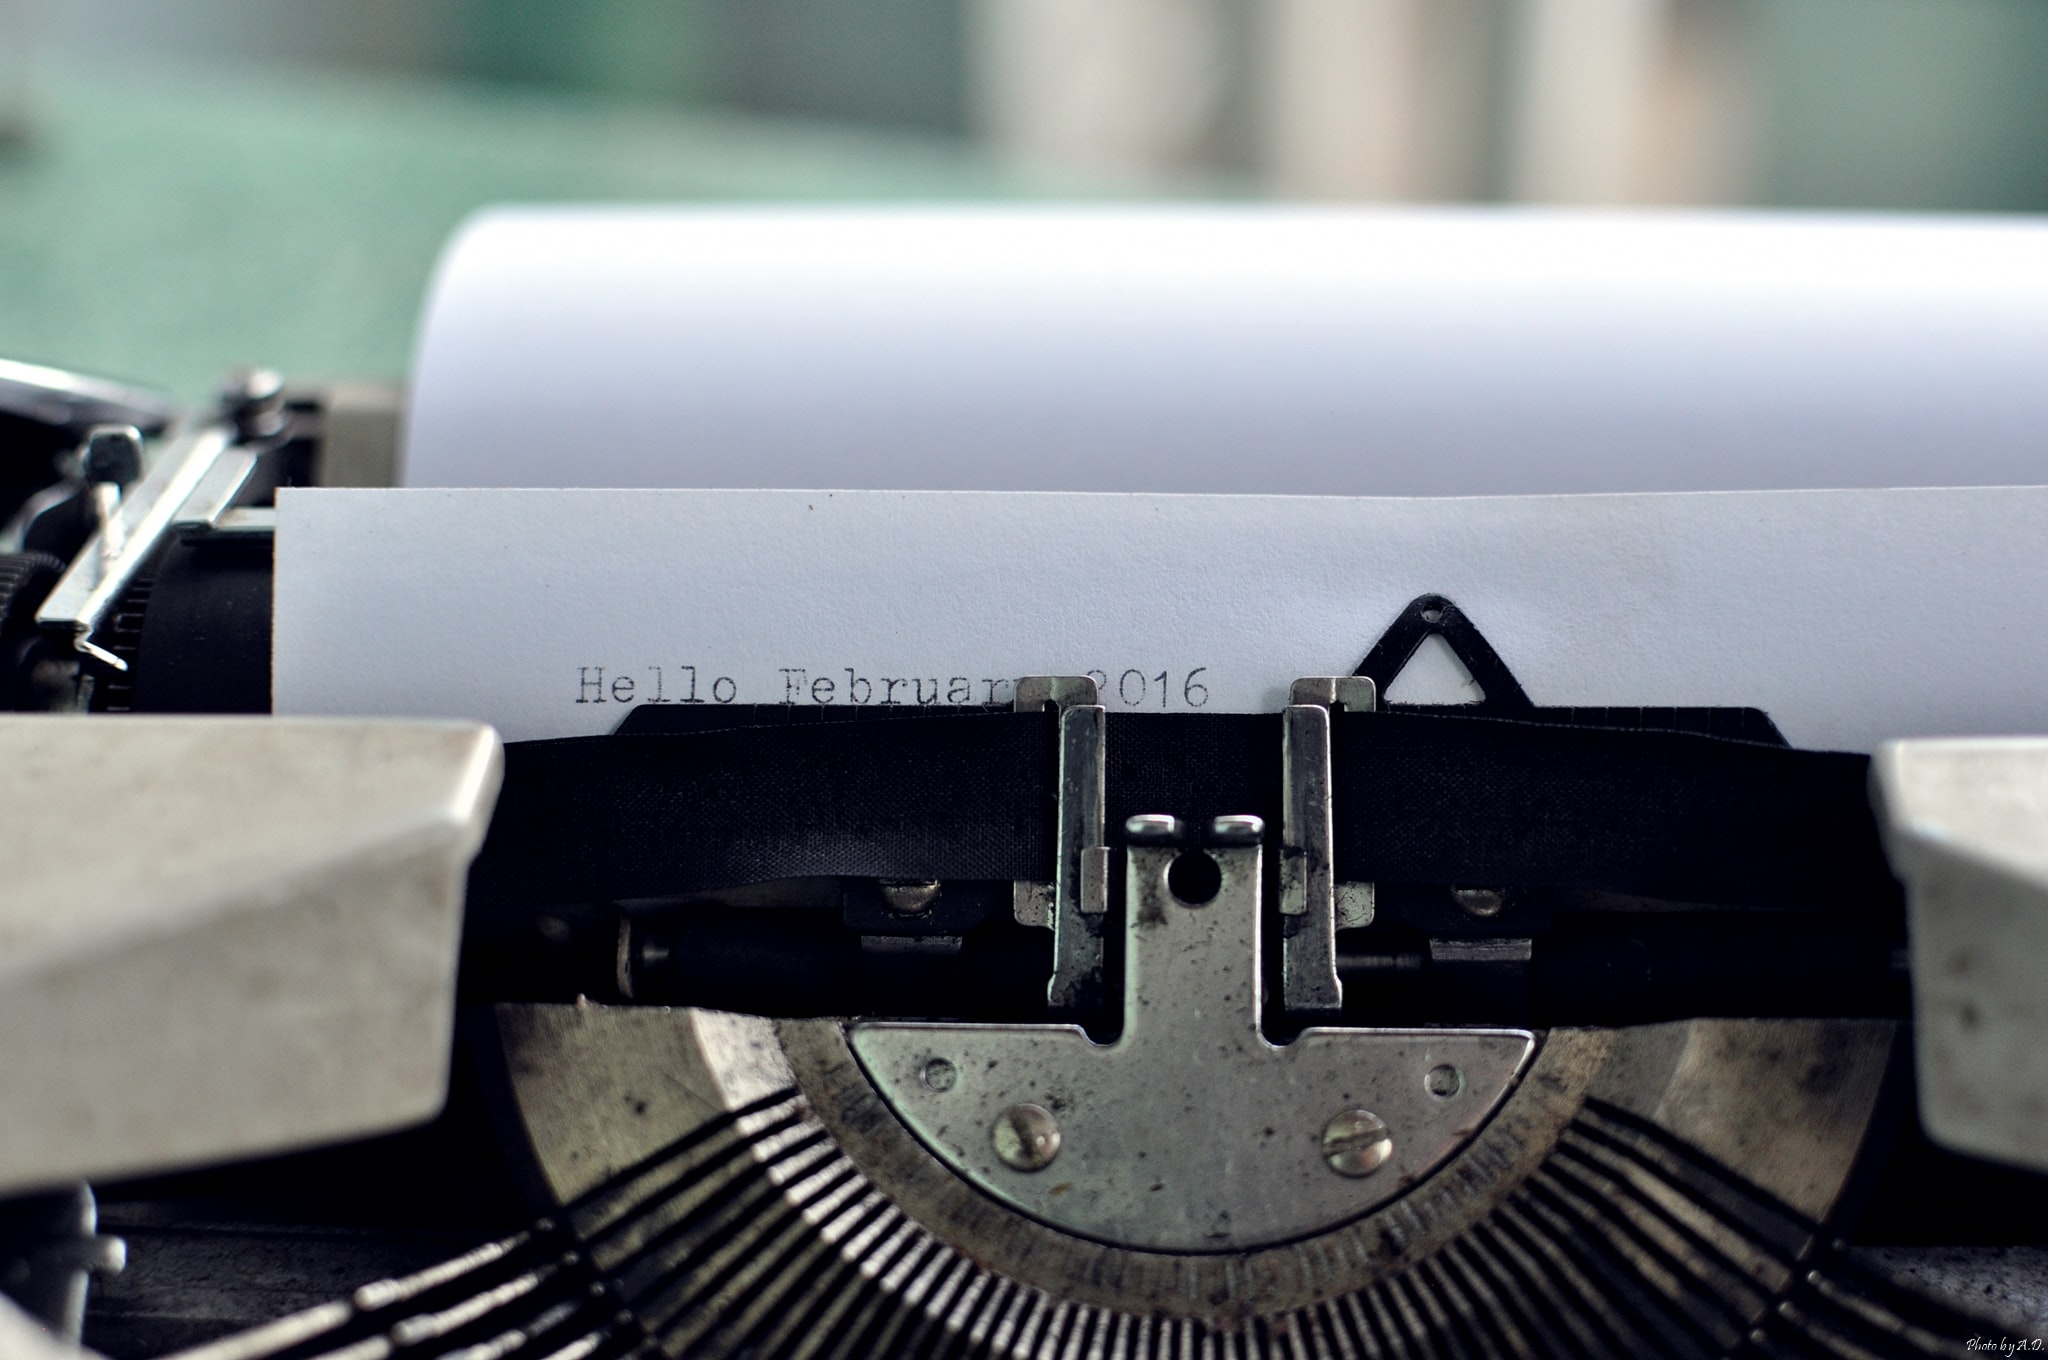 paper on typewriter showing Hello February 2016 text